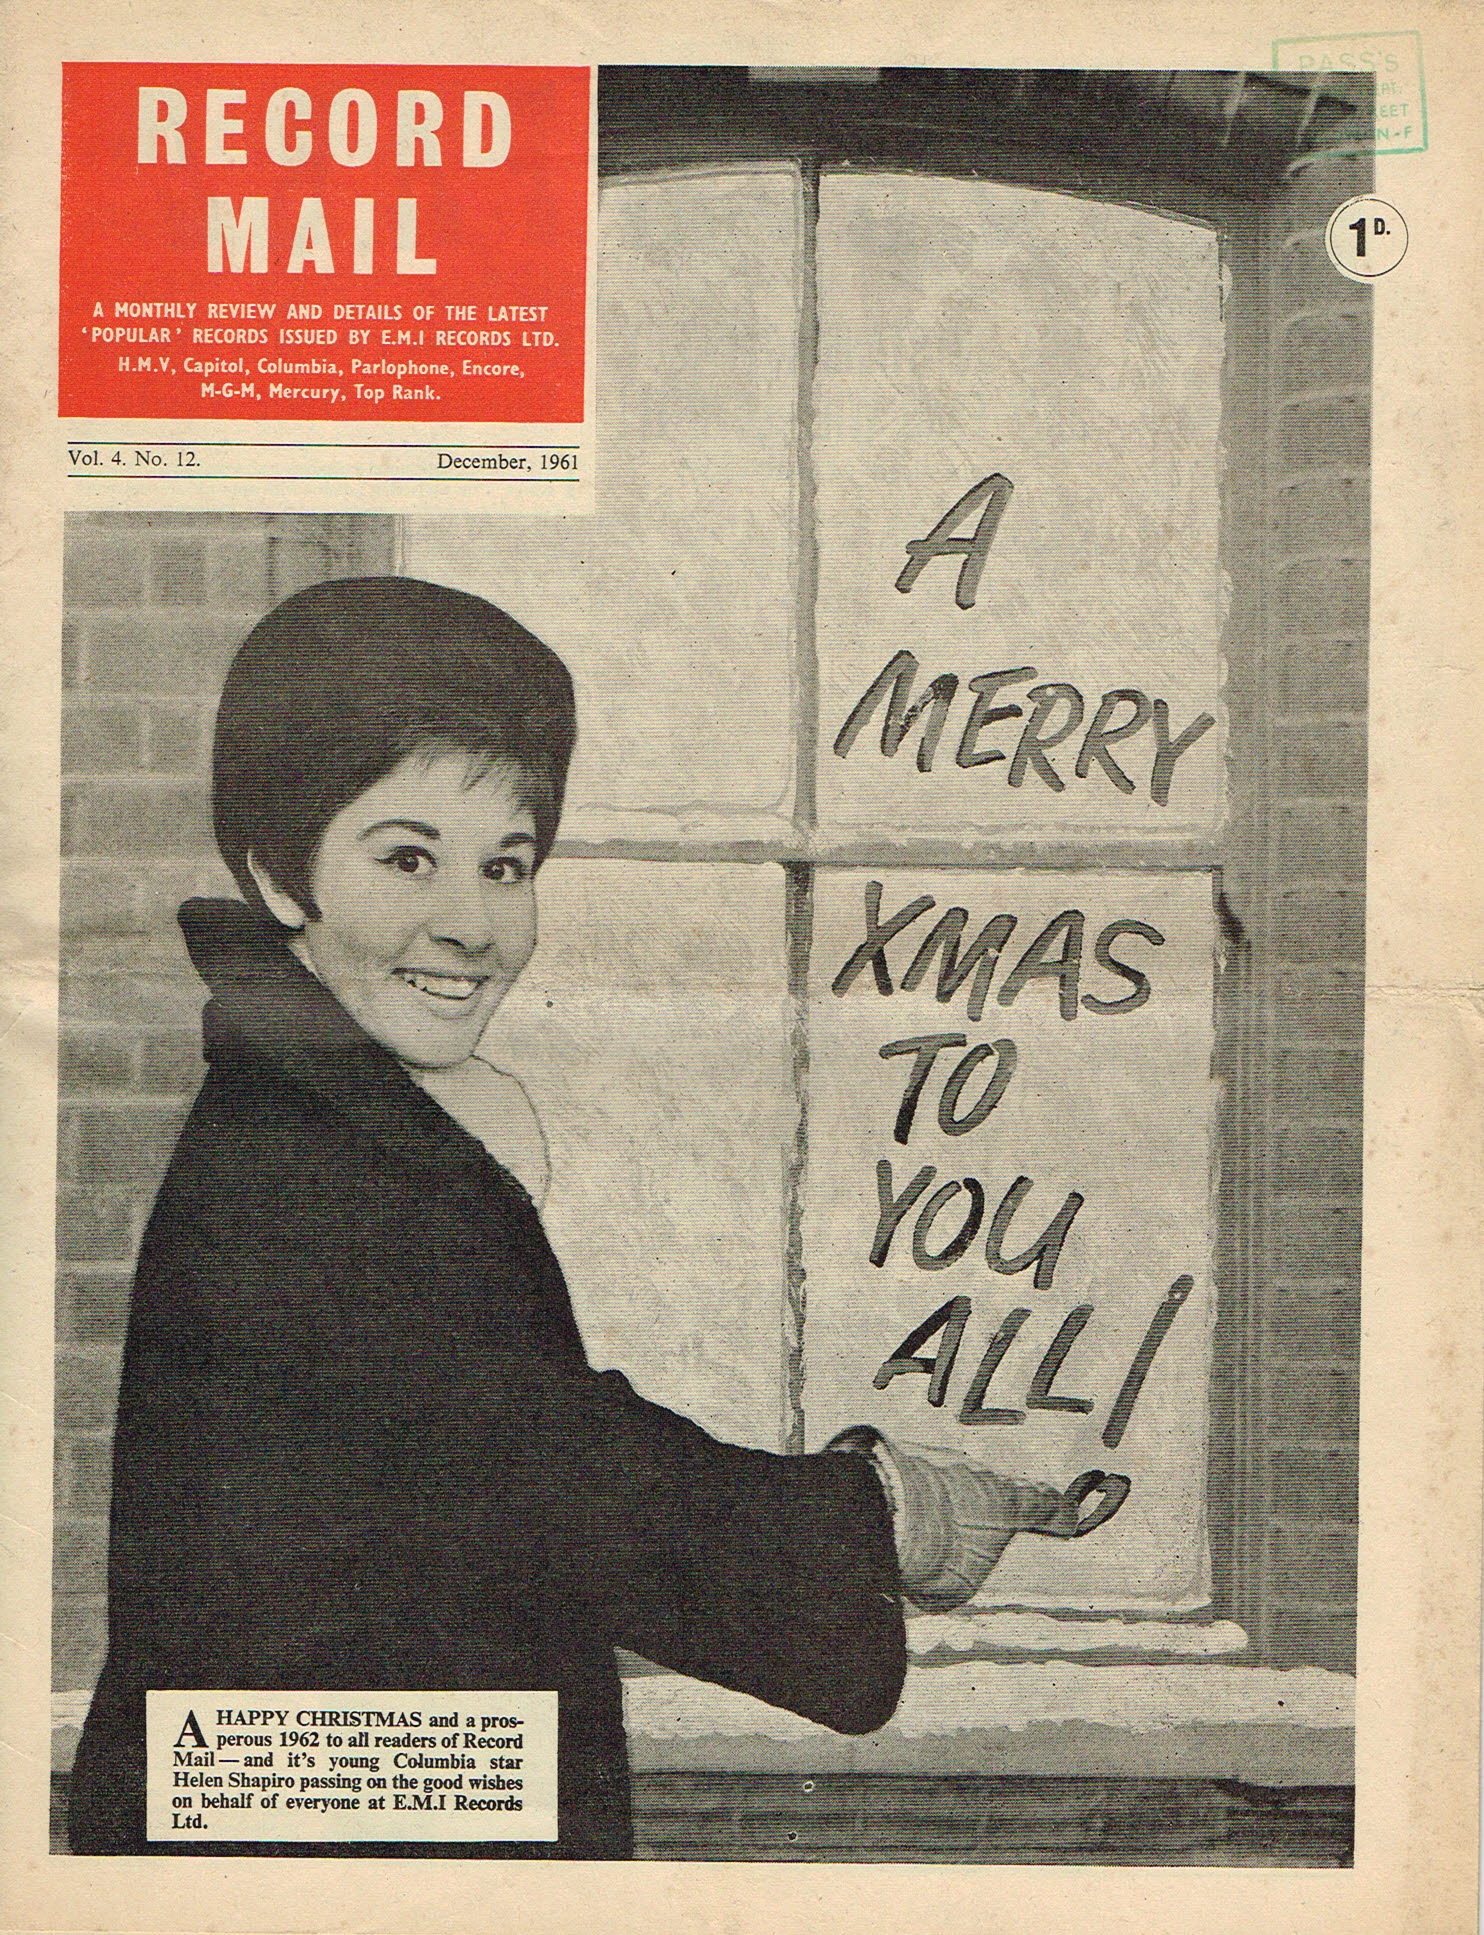 December 1961 XMAS RECORD MAIL Vintage Newspaper HELEN SHAPIRO refS4 December 1961 monthly review and details of the latest 'popular' records issued by E.M.I. Records Ltd. Vol.4 No.12. 16 page publication pre-owned in well read condition.